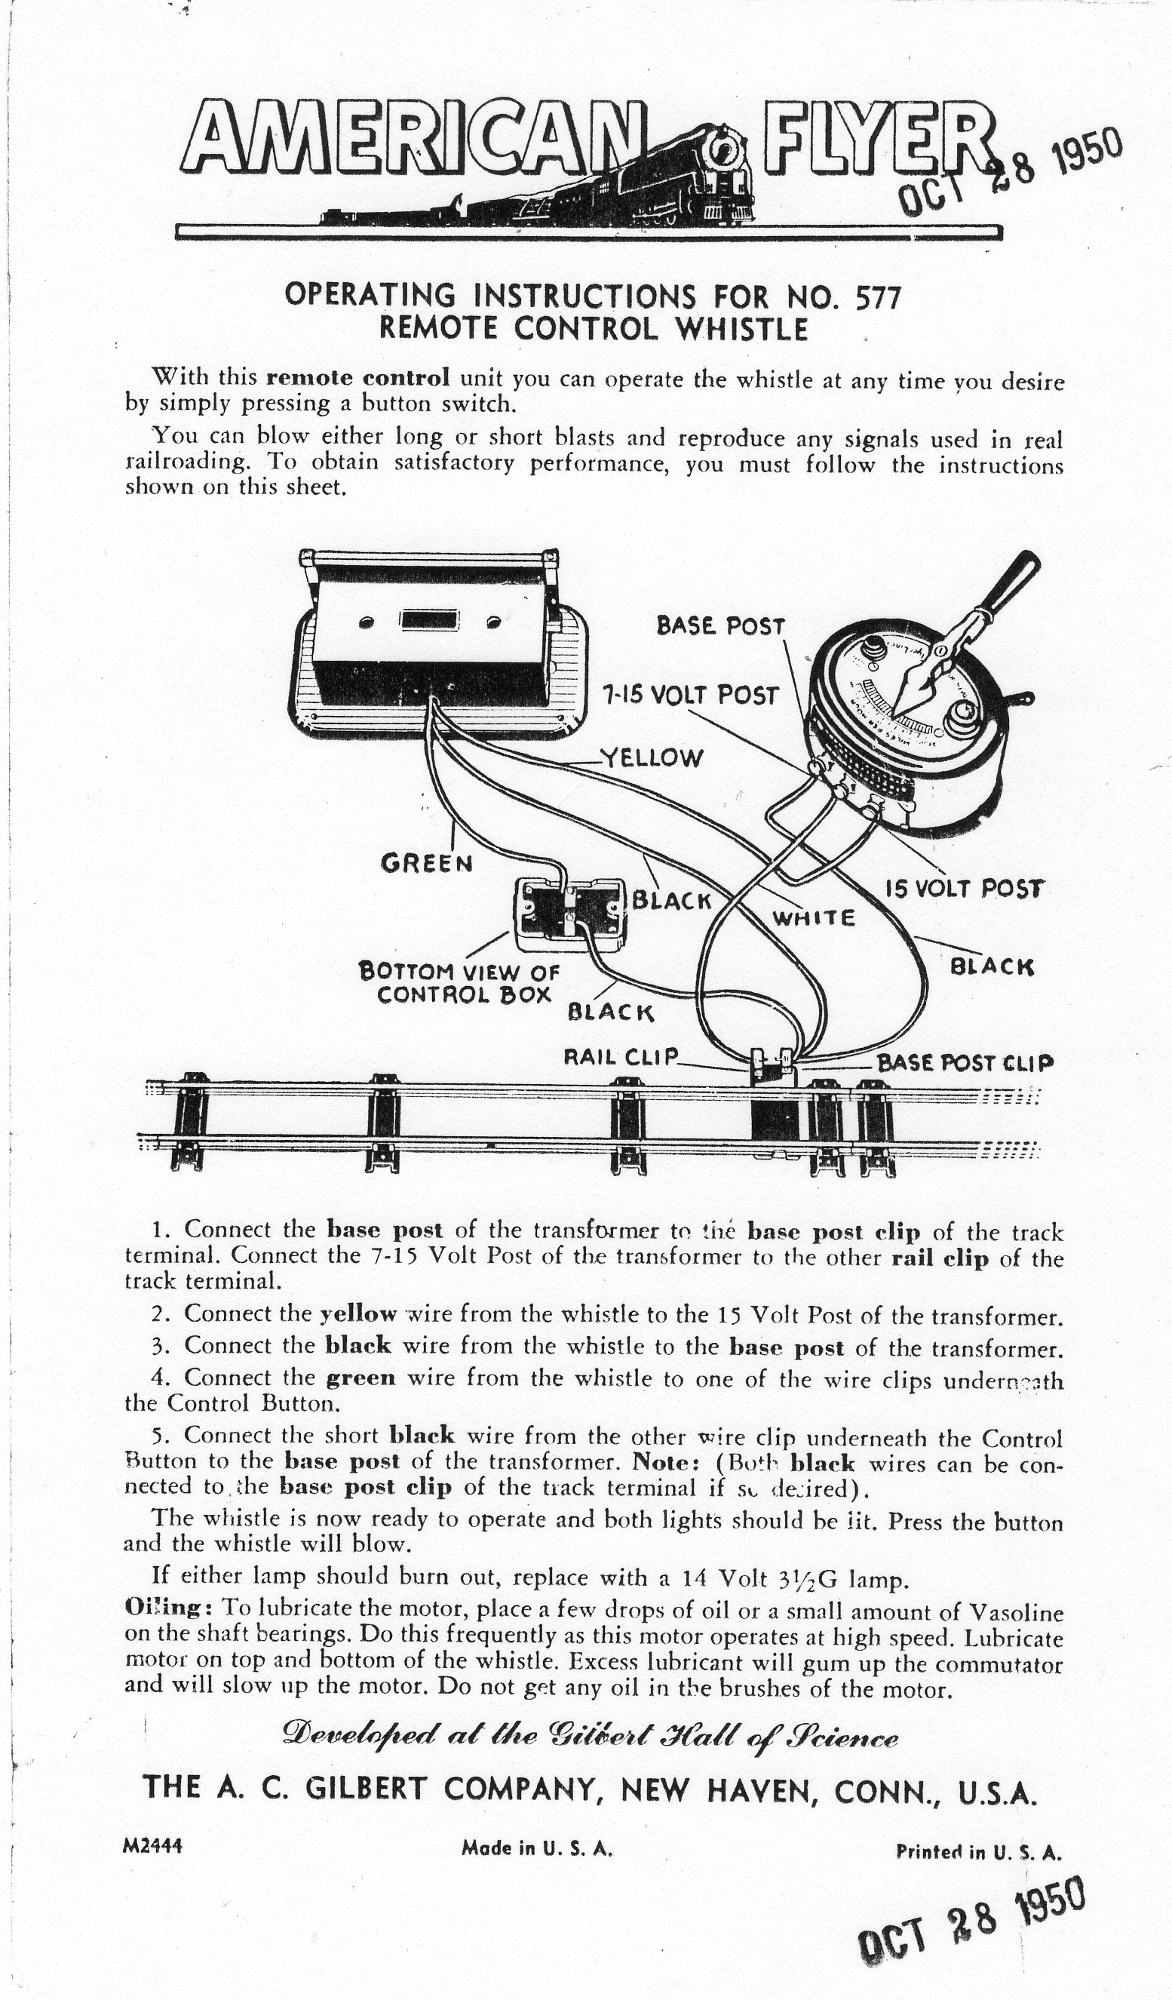 American Flyer Remote Control Whistle 577 Operating Instructions